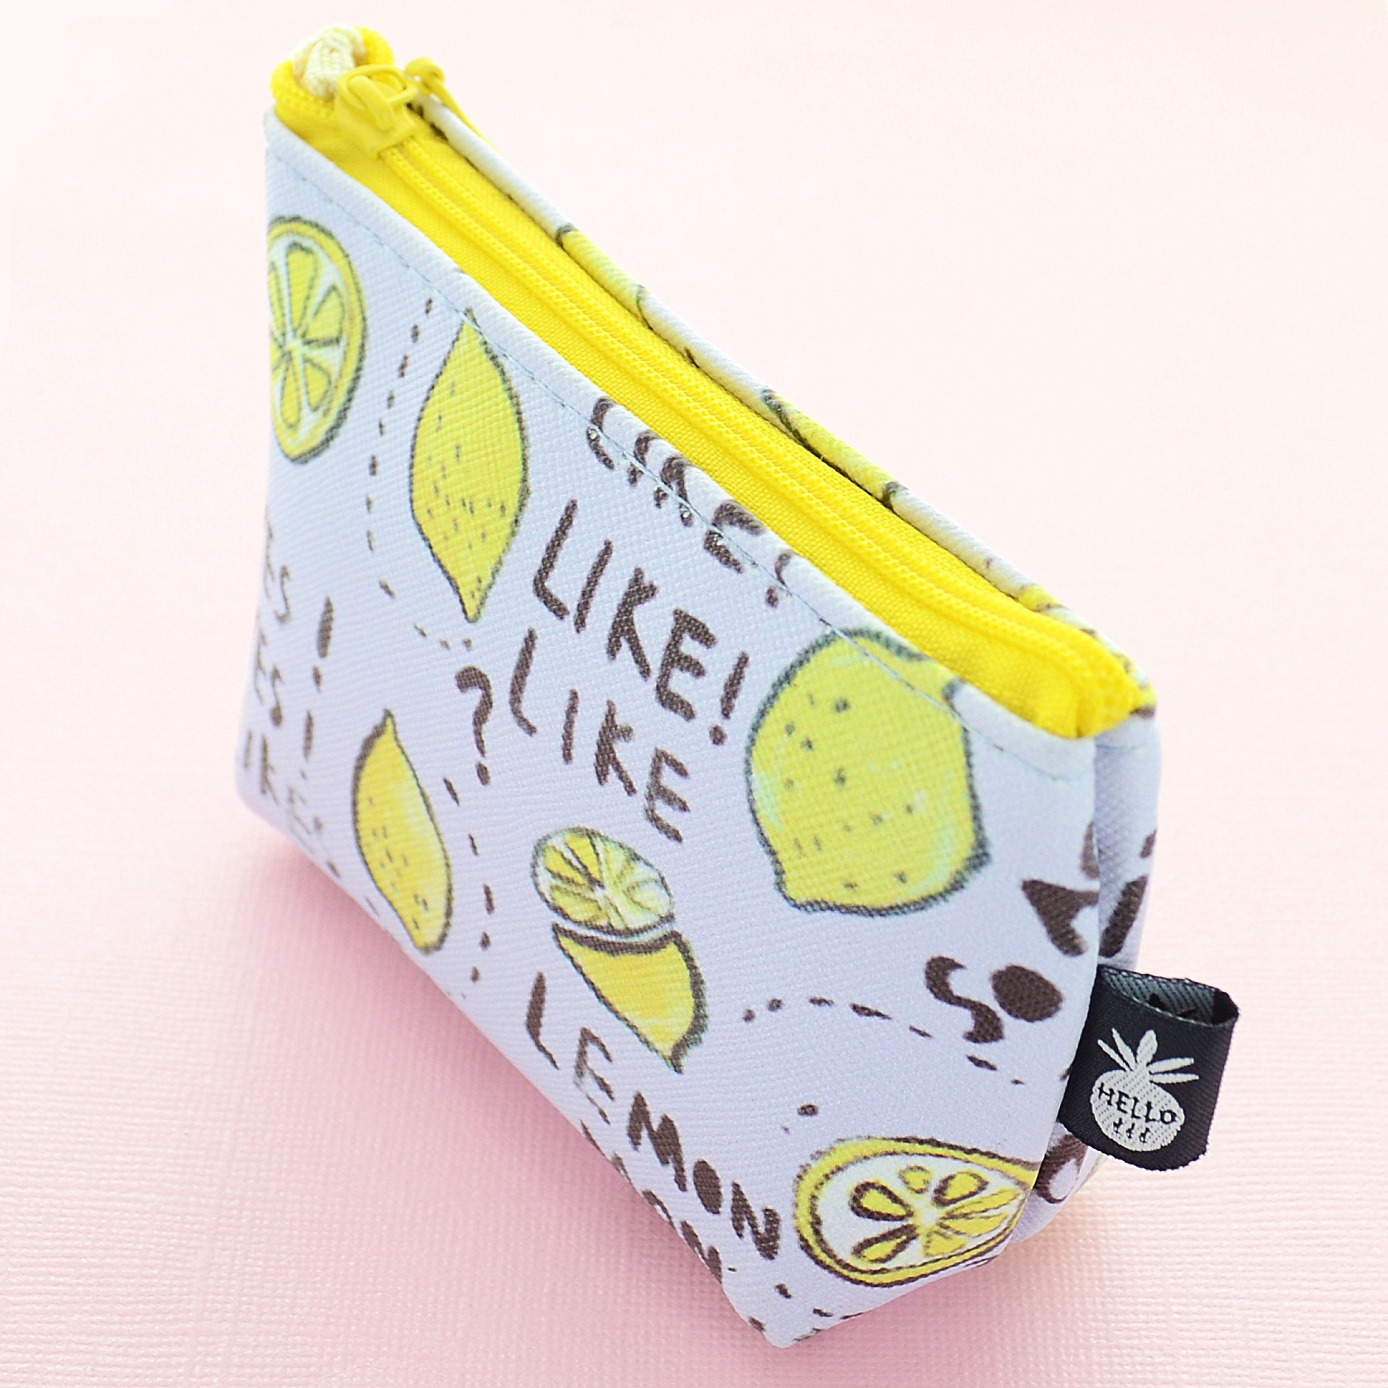 Money Bag Small Cute Change Purse  494675400  INS